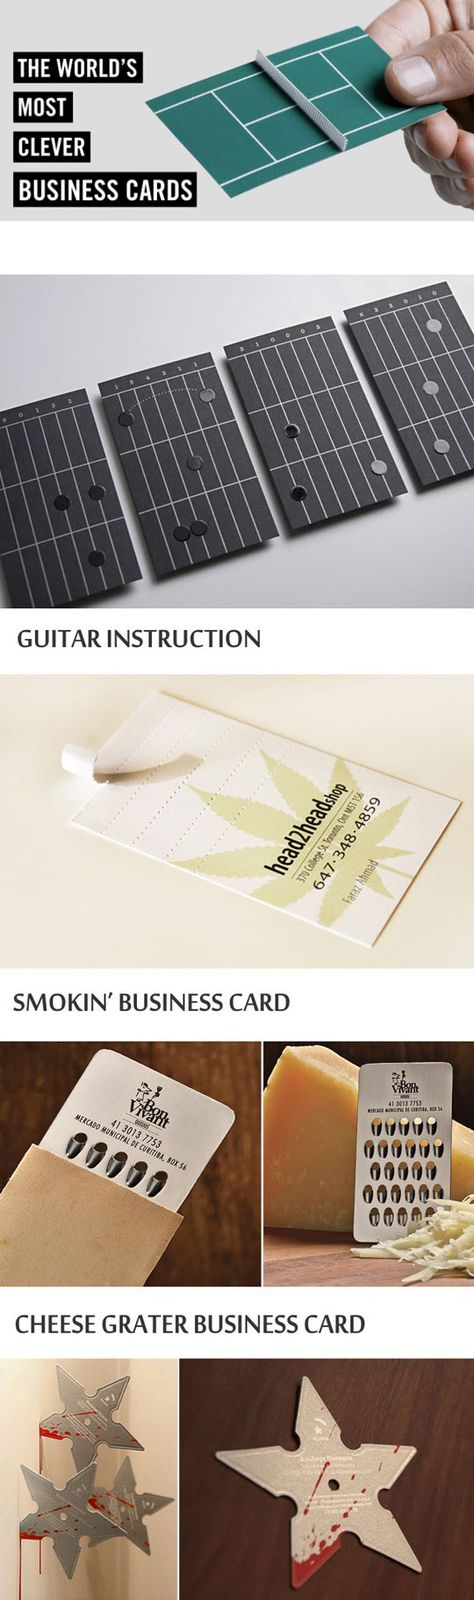 30 unconventional business cards cheese shop cheese grater and grater